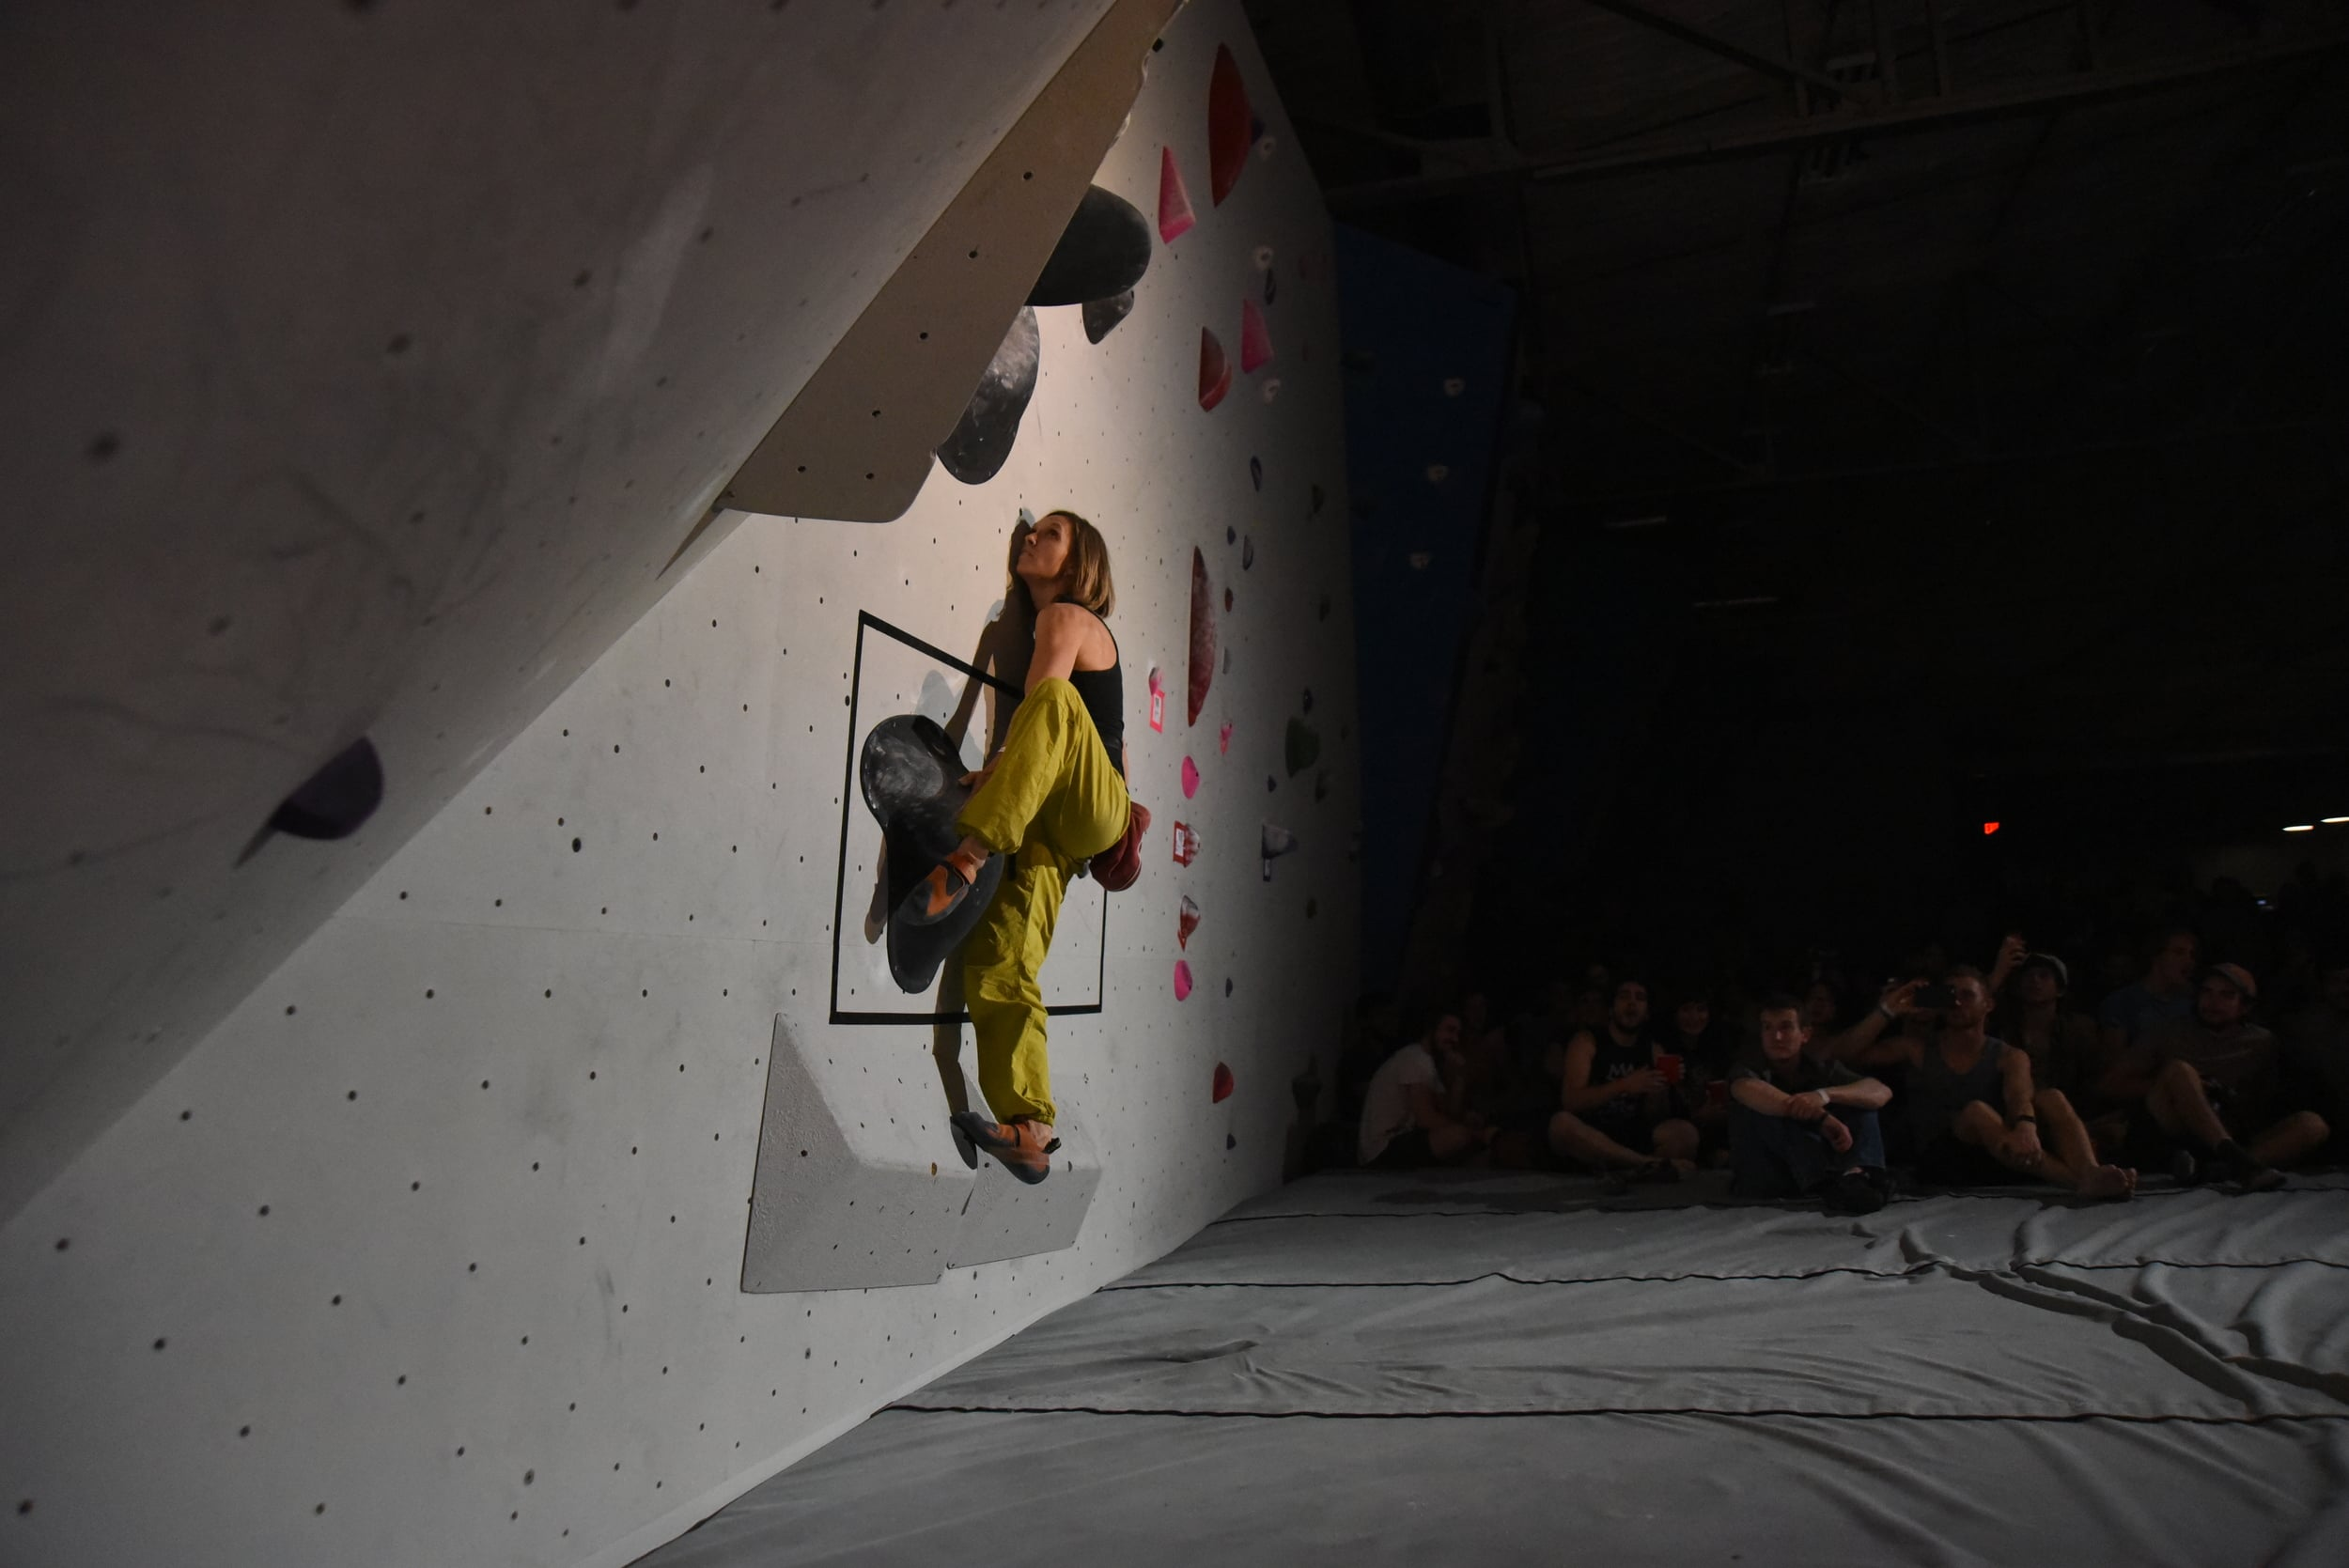 Finals problem at the Summit Bouldering Series